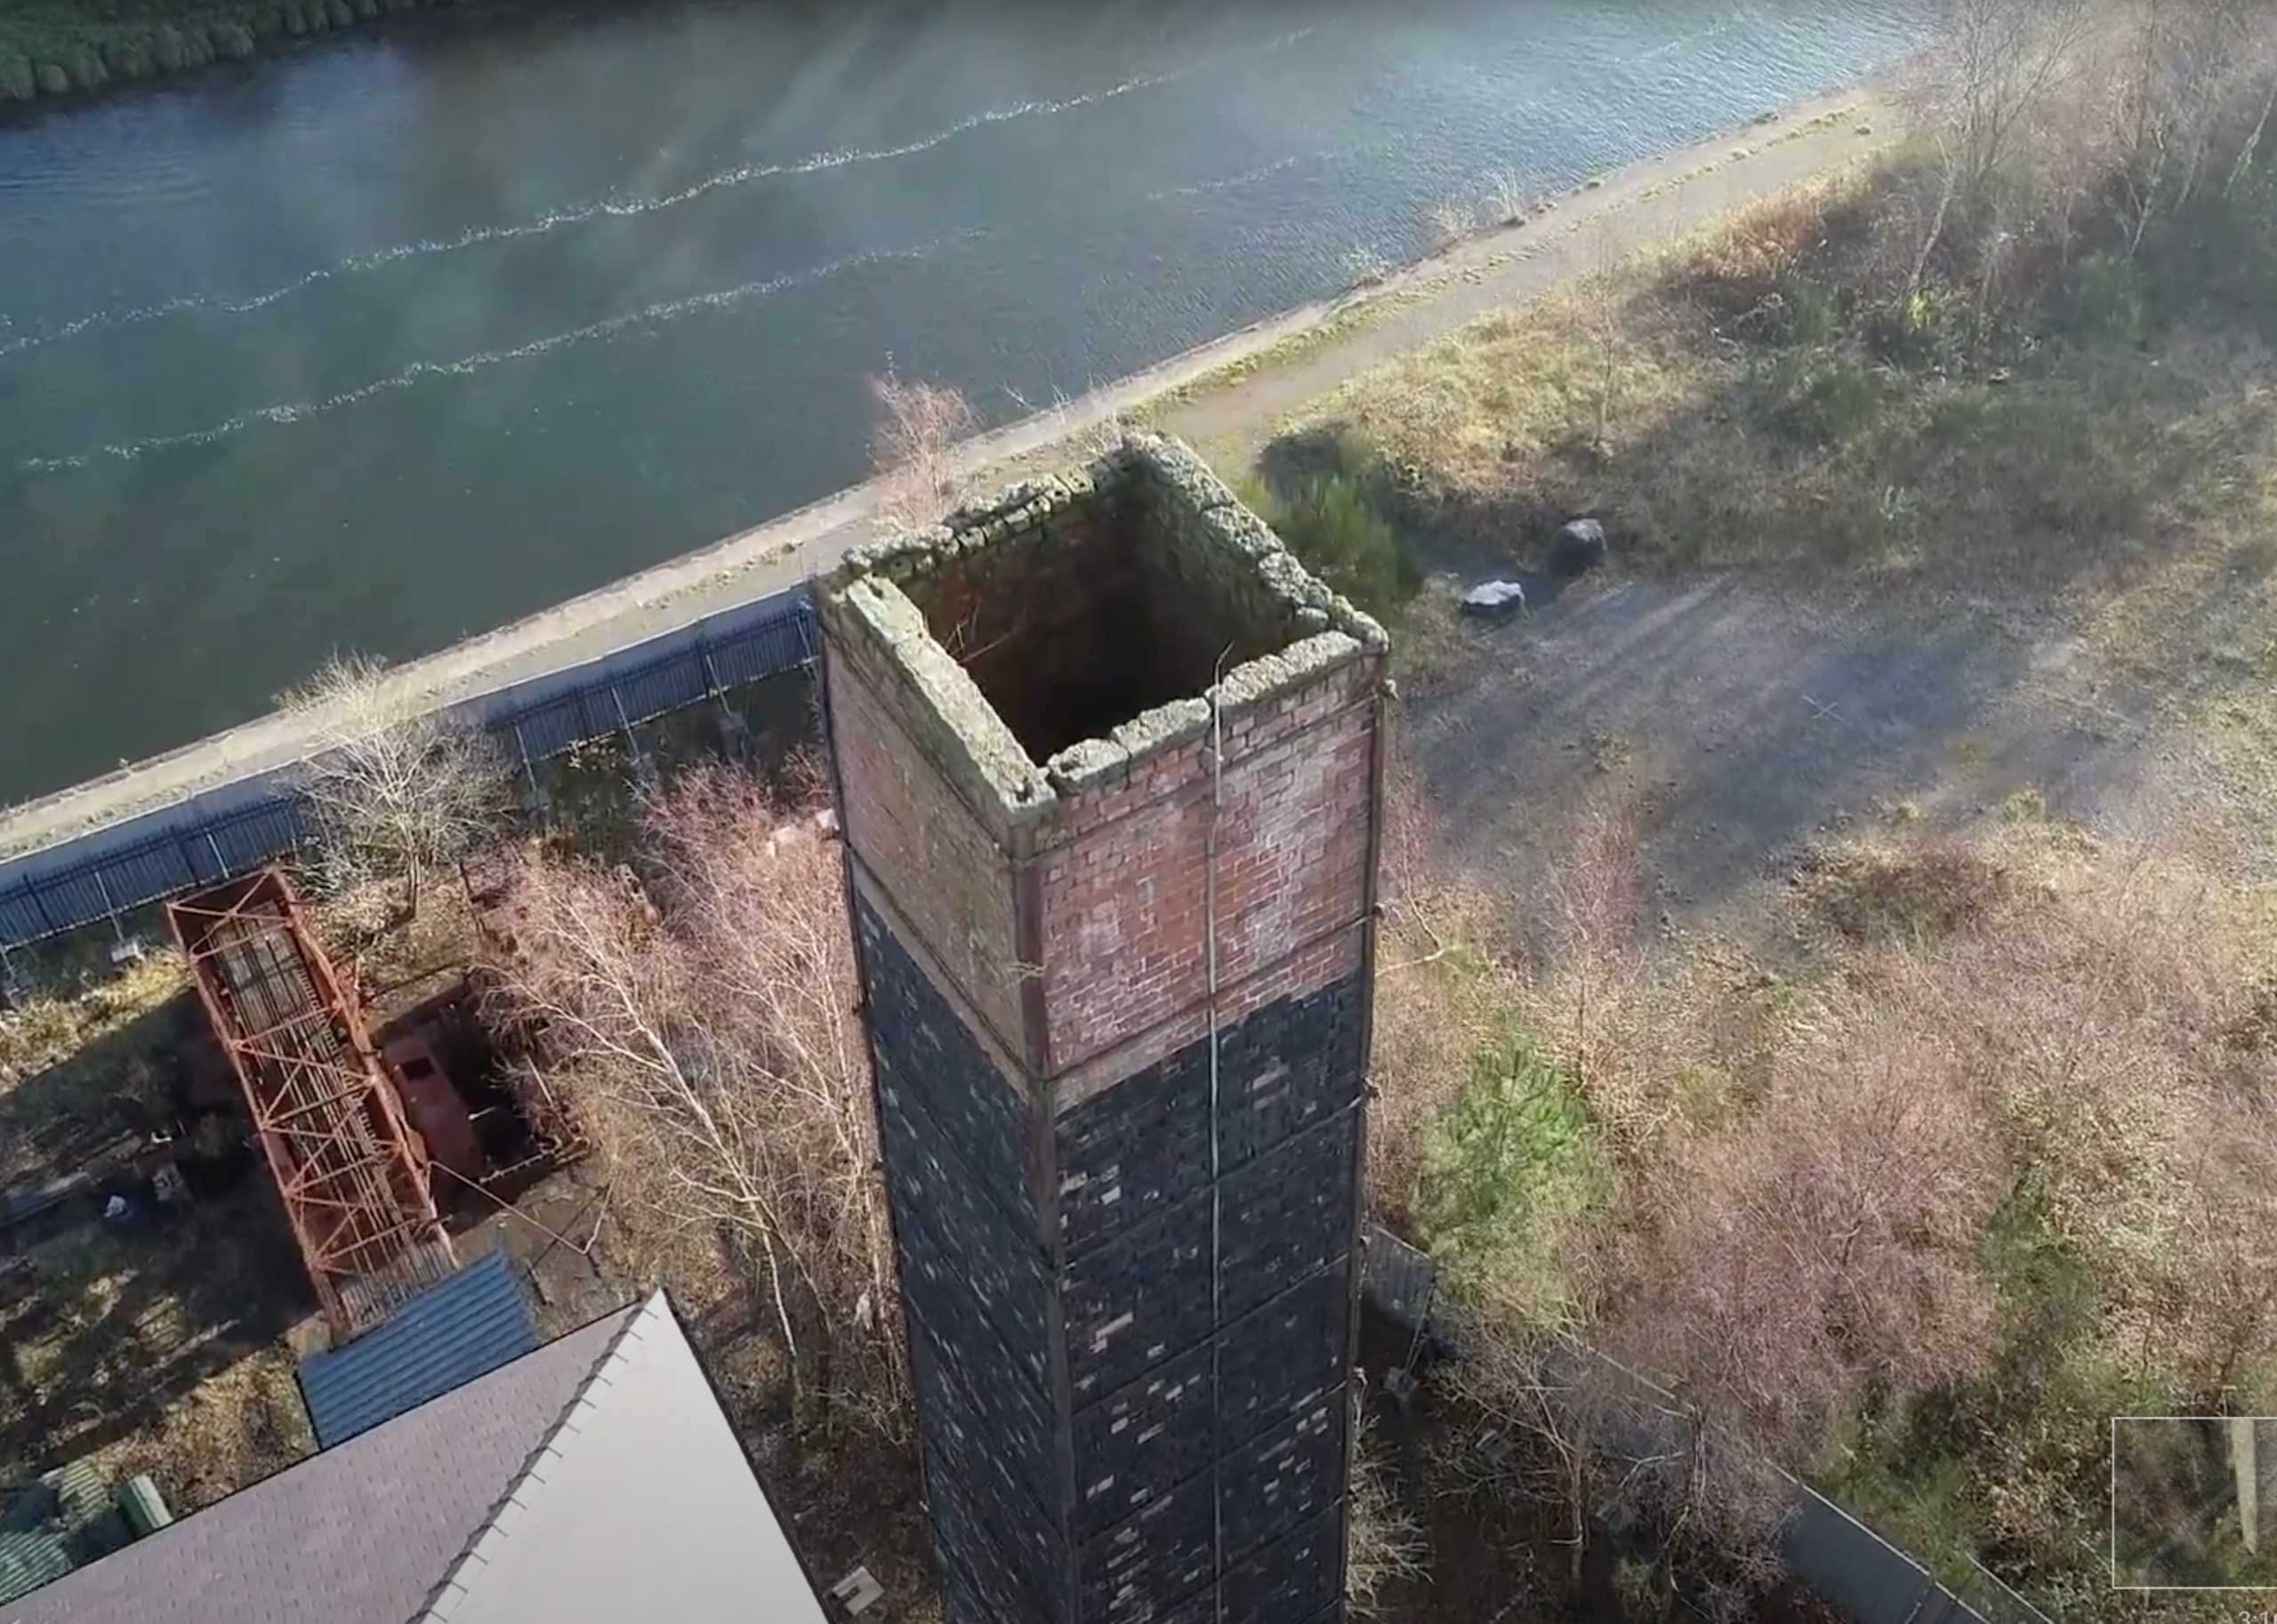 Hafod_Copper_Building_2Inspection_Videos_-_YouTube